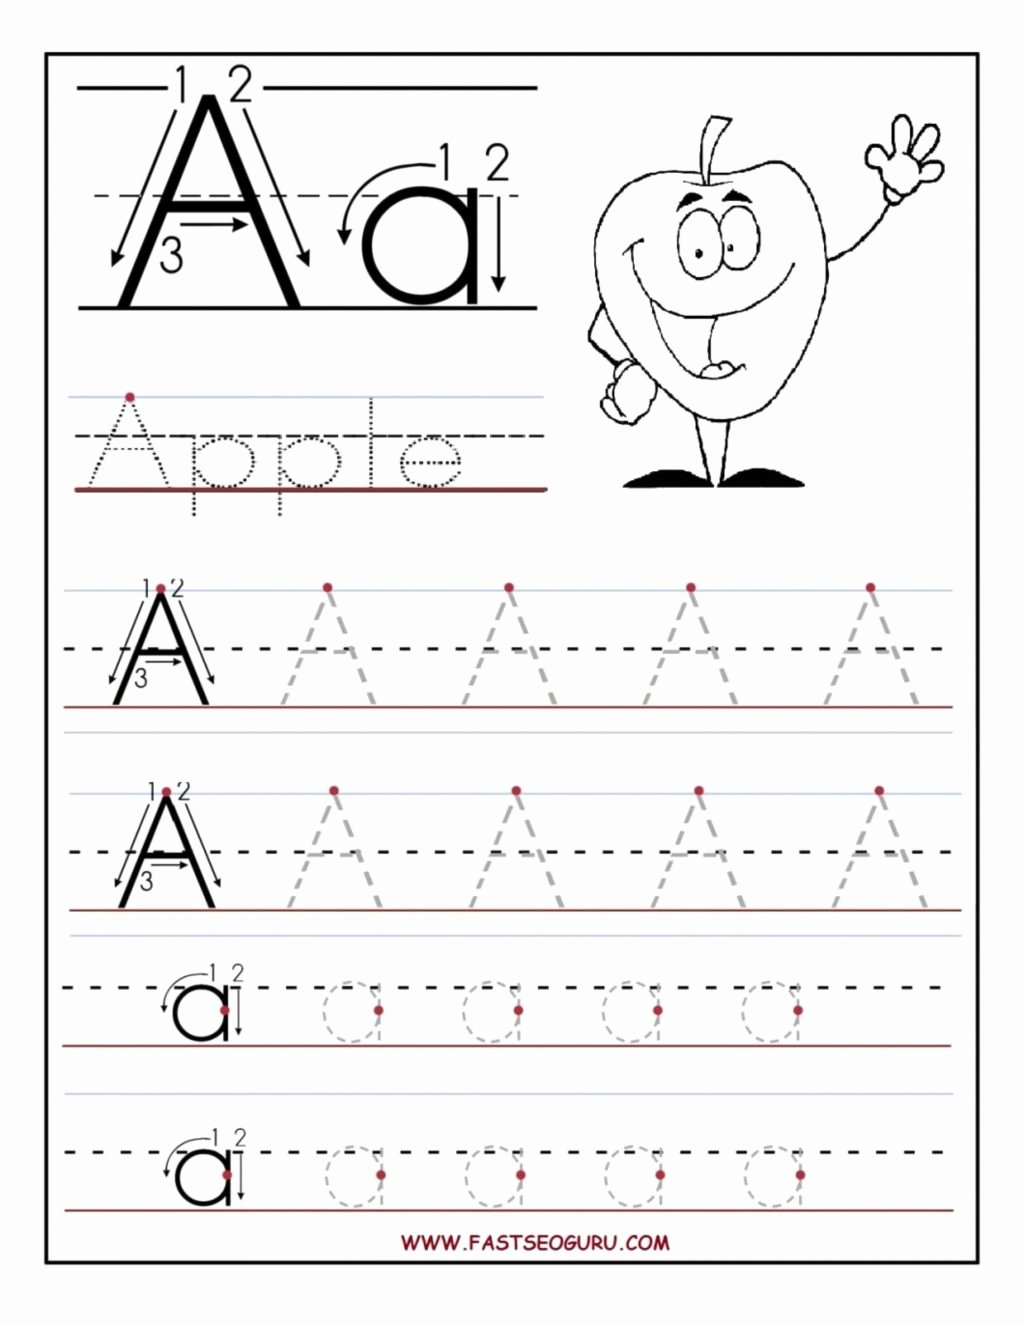 Worksheets for Preschoolers Letter A Ideas Worksheet Worksheet Trace Letters Tracing Worksheets for